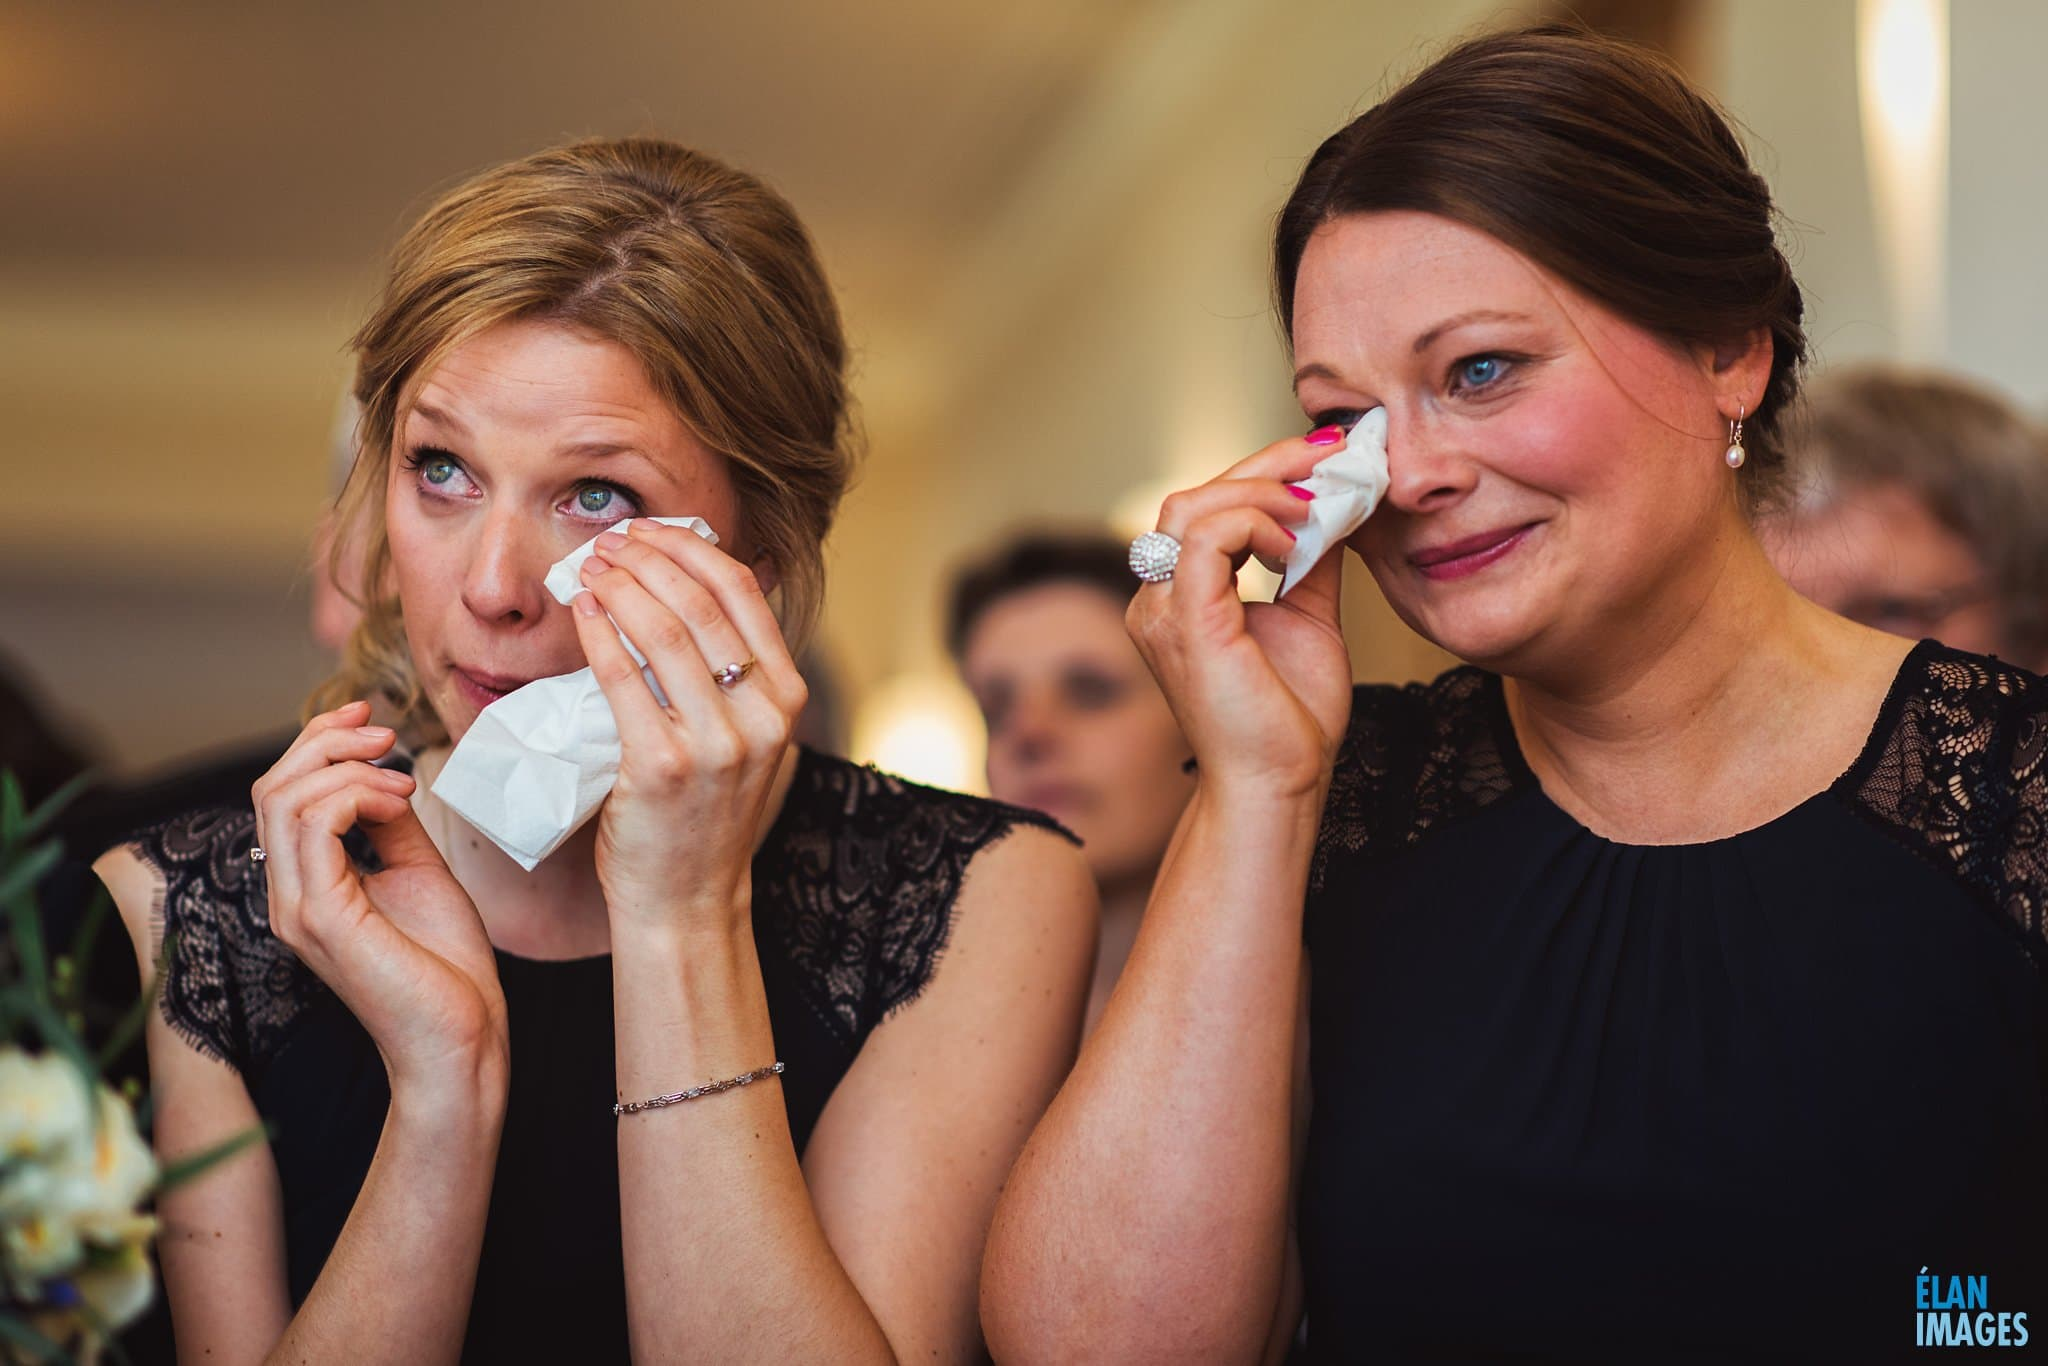 Emotional bridesmaids during a wedding ceremony at Coombe Lodge